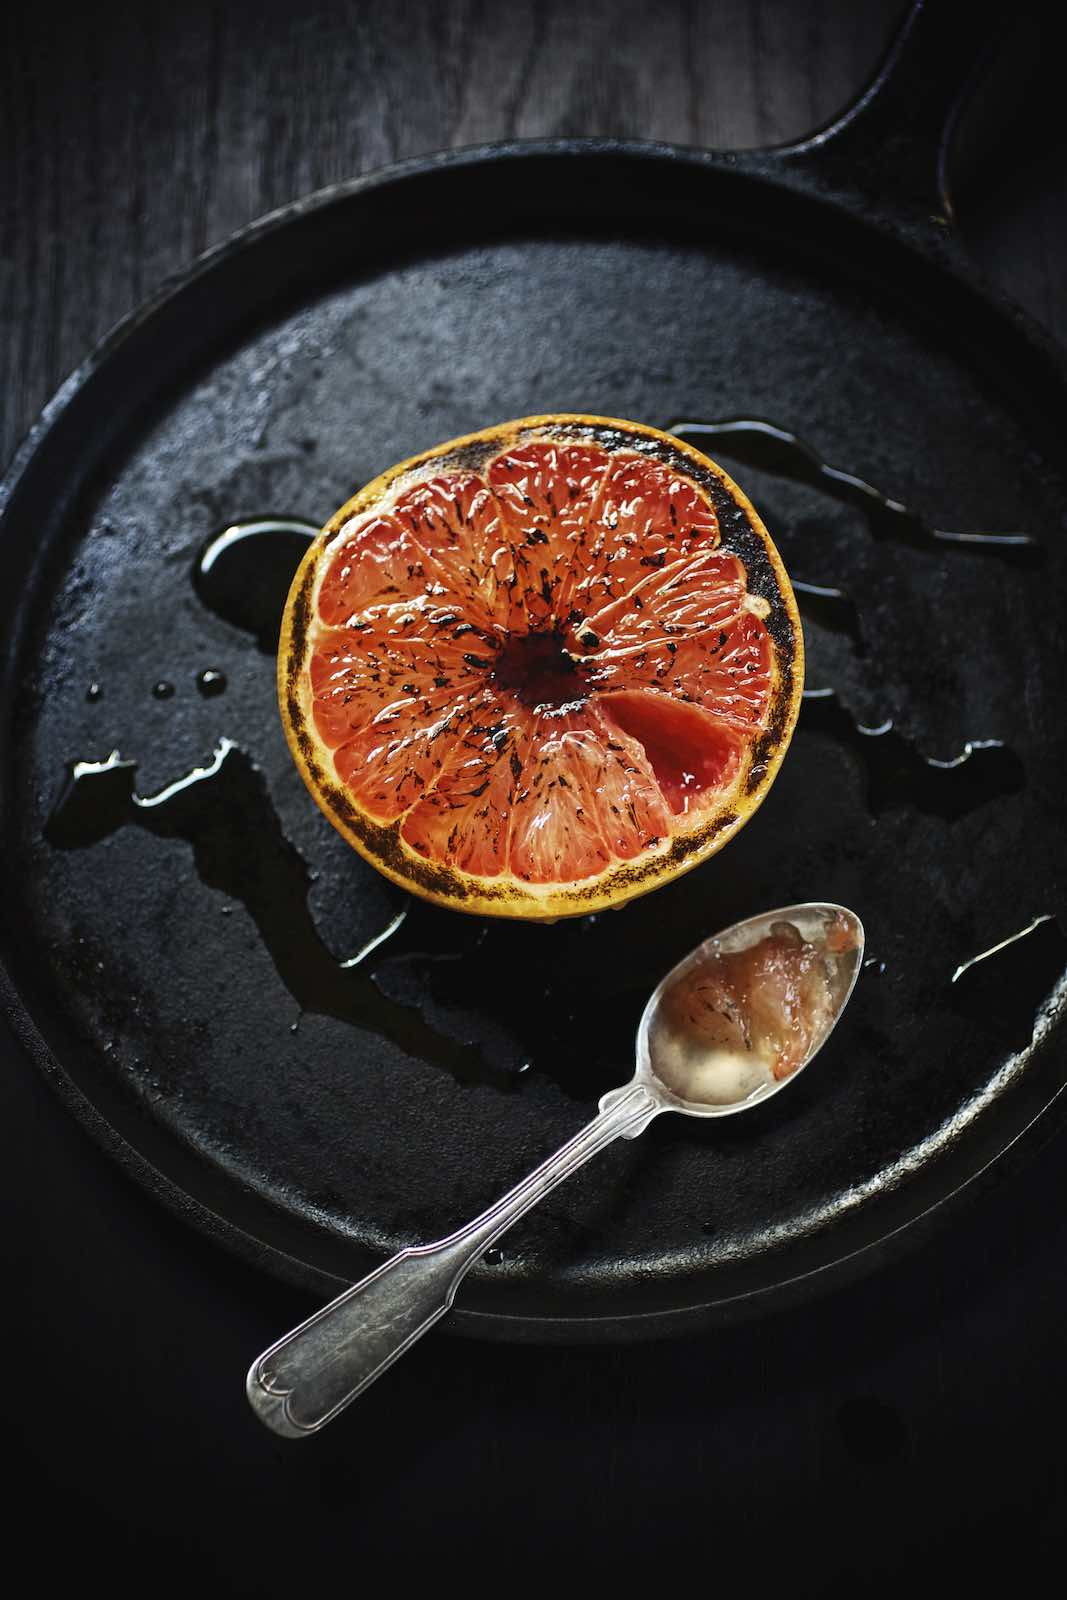 Jody Horton Photography - Halved grapefruit and silver spoon in a black skillet.